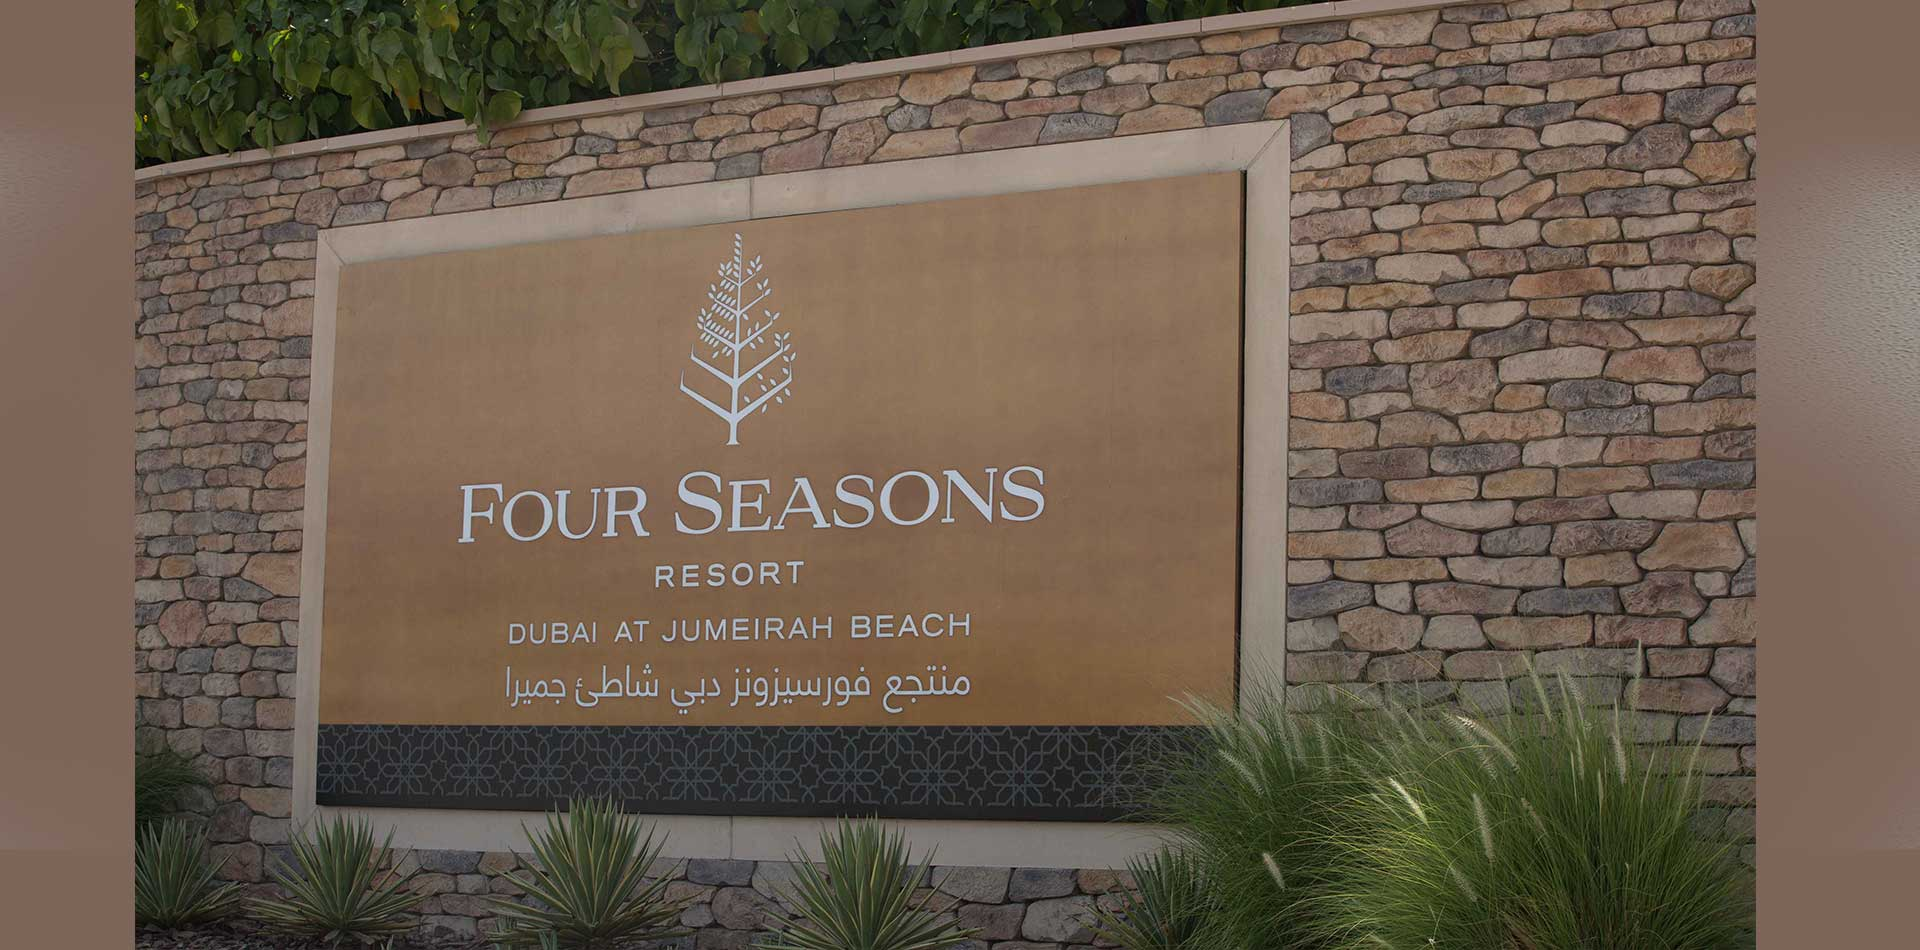 Monument Signage for Four Seasons Resort